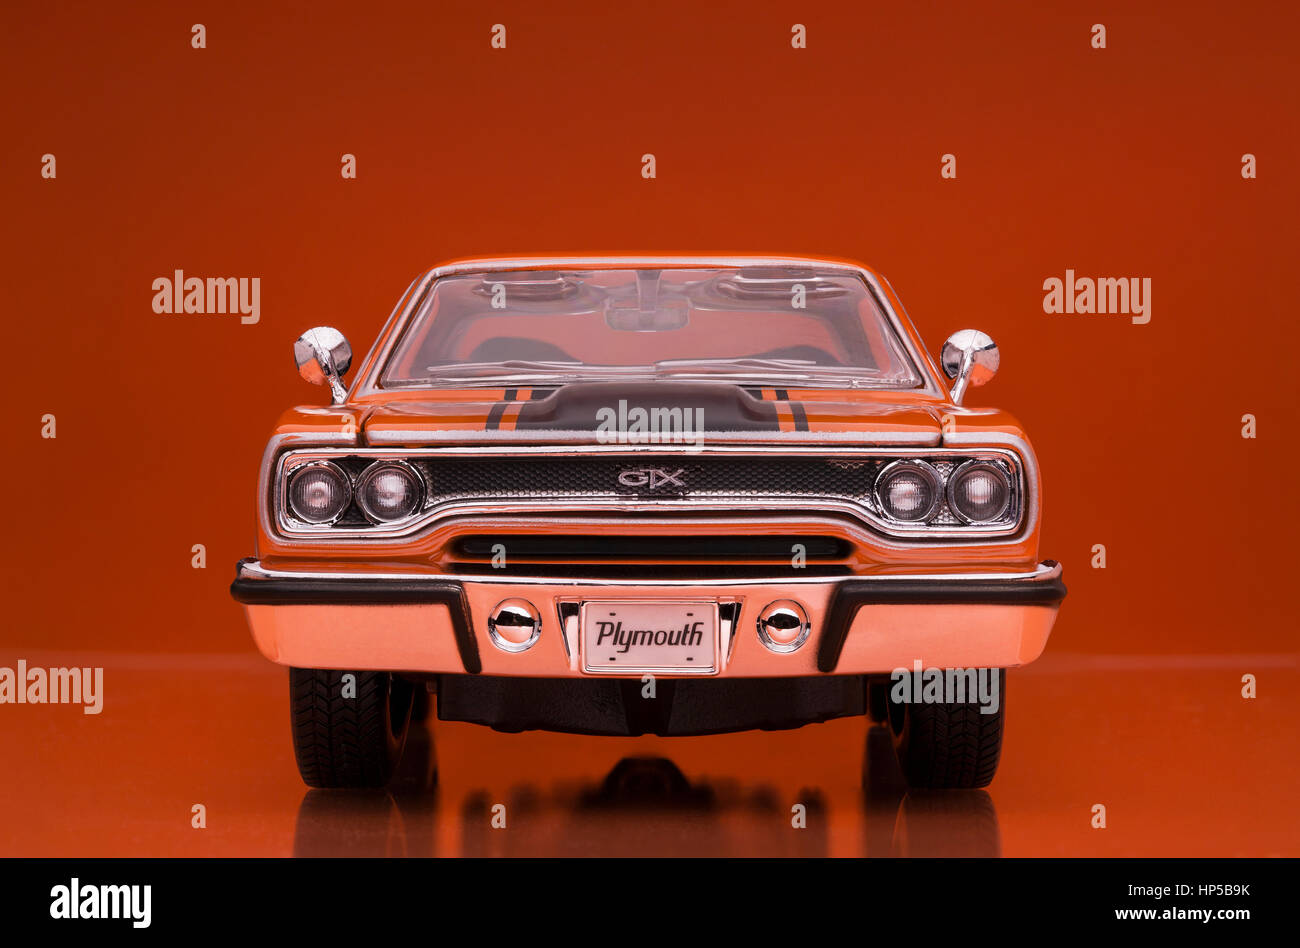 1970 Plymouth GTX Welly die cast model car Stock Photo